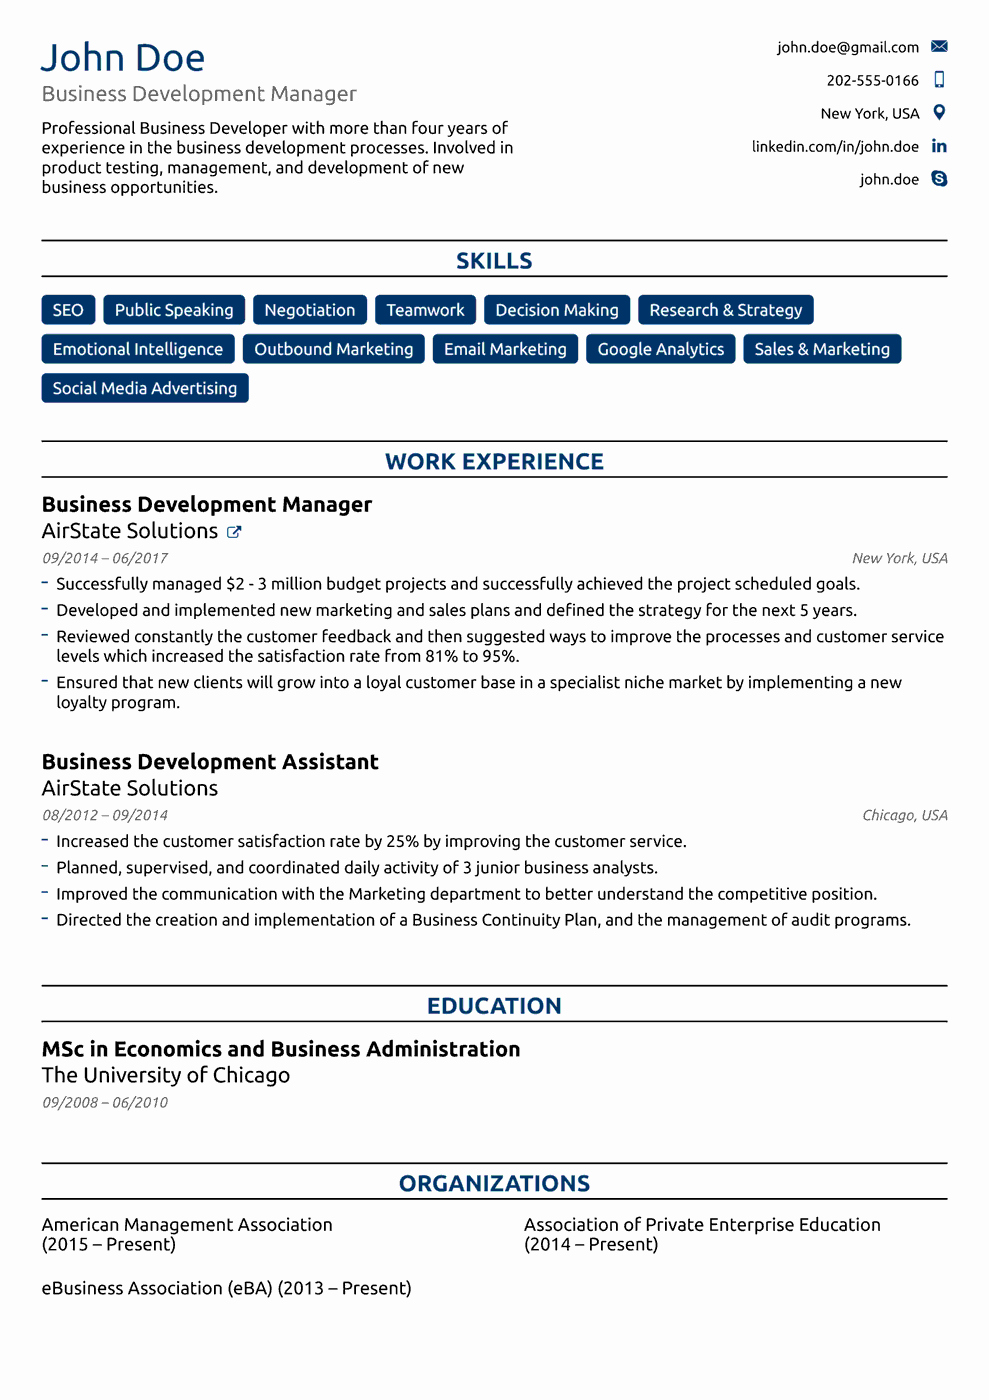 Professional Resume Template Free Lovely 2018 Professional Resume Templates as they Should Be [8 ]